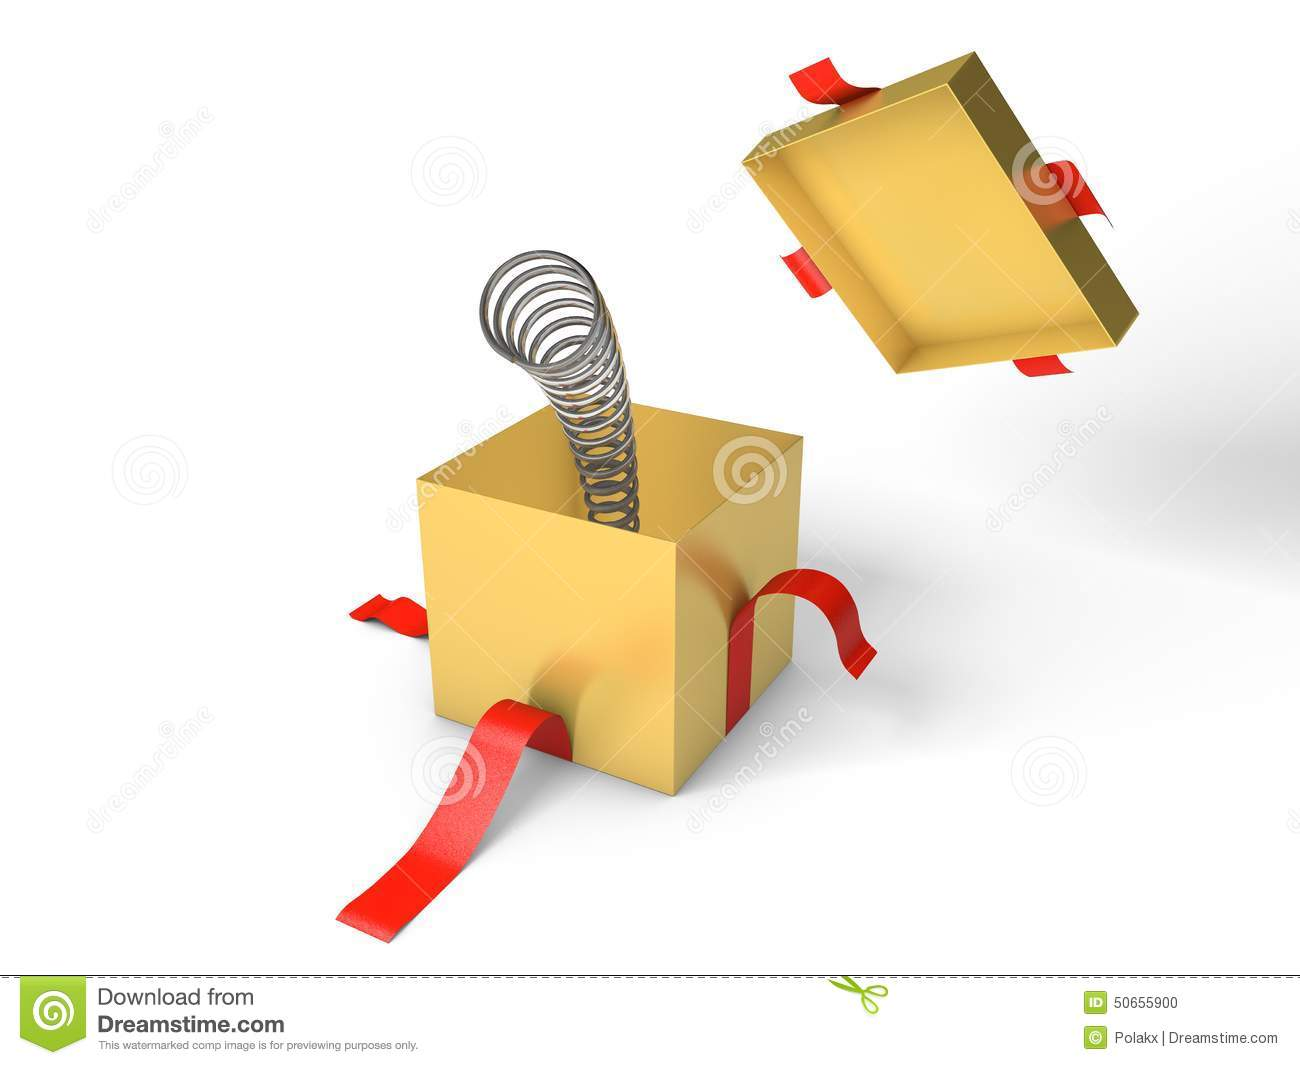 ... Illustration: Surprise. Open golden gift box with the spring inside